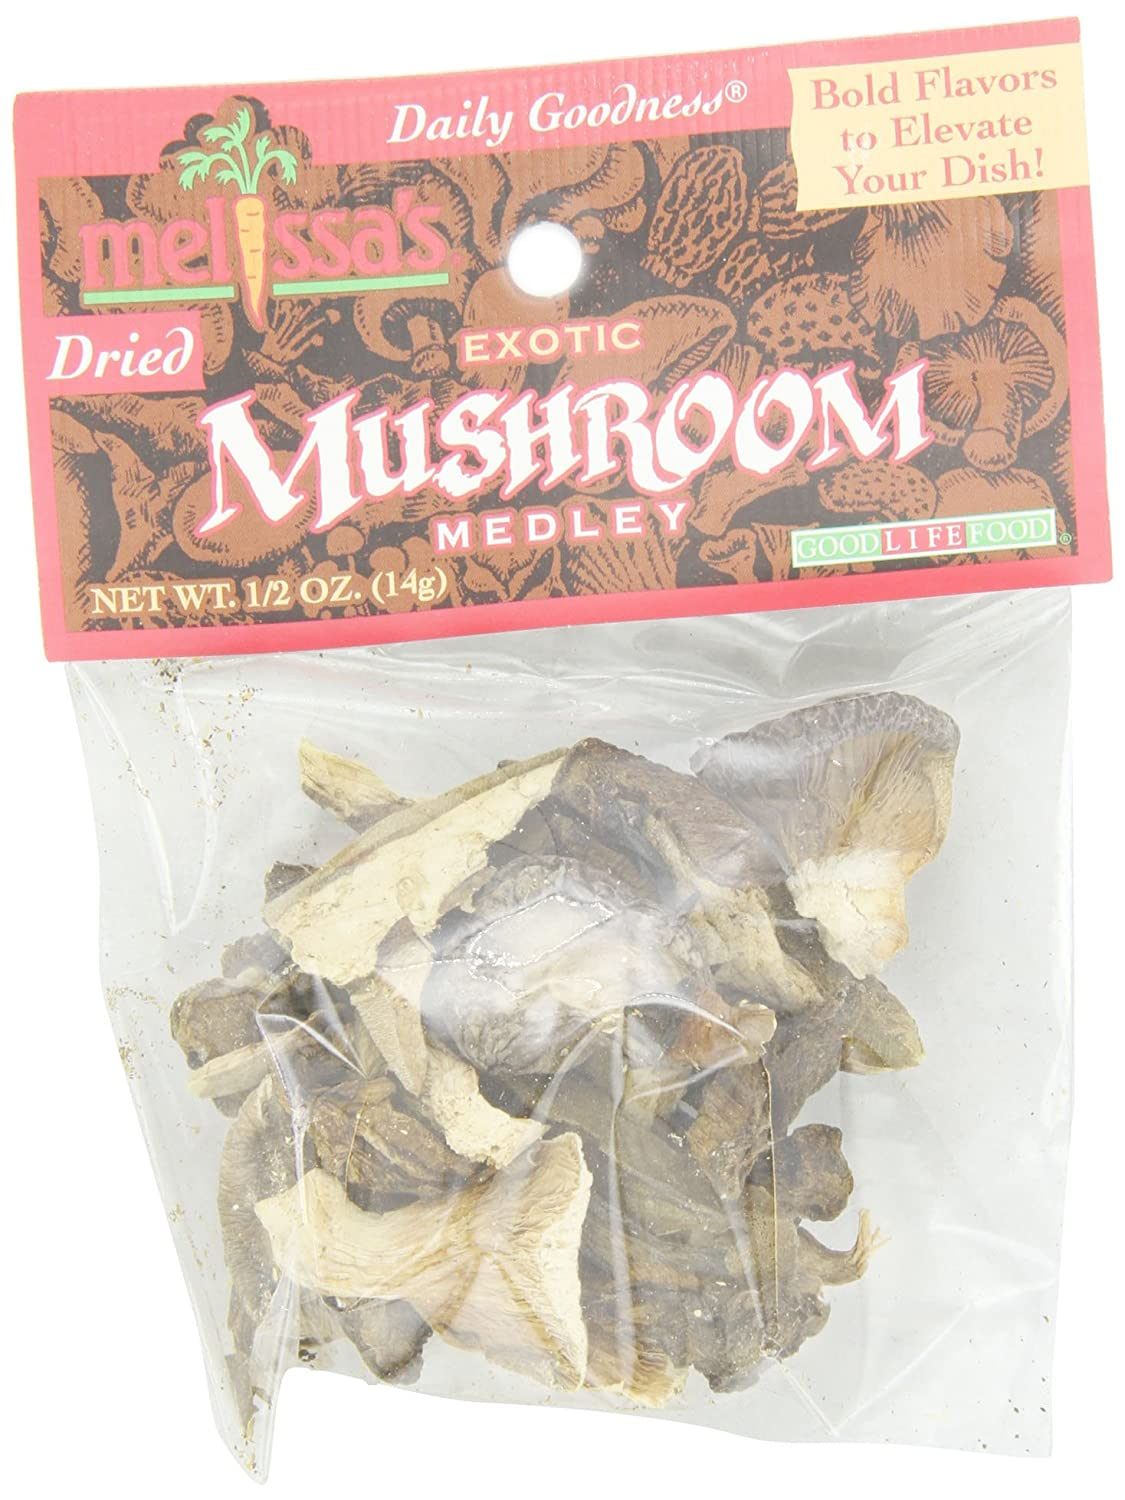 Melissa's Exotic Mushroom Medley, 0.5-Ounce Bags (Pack of 12)